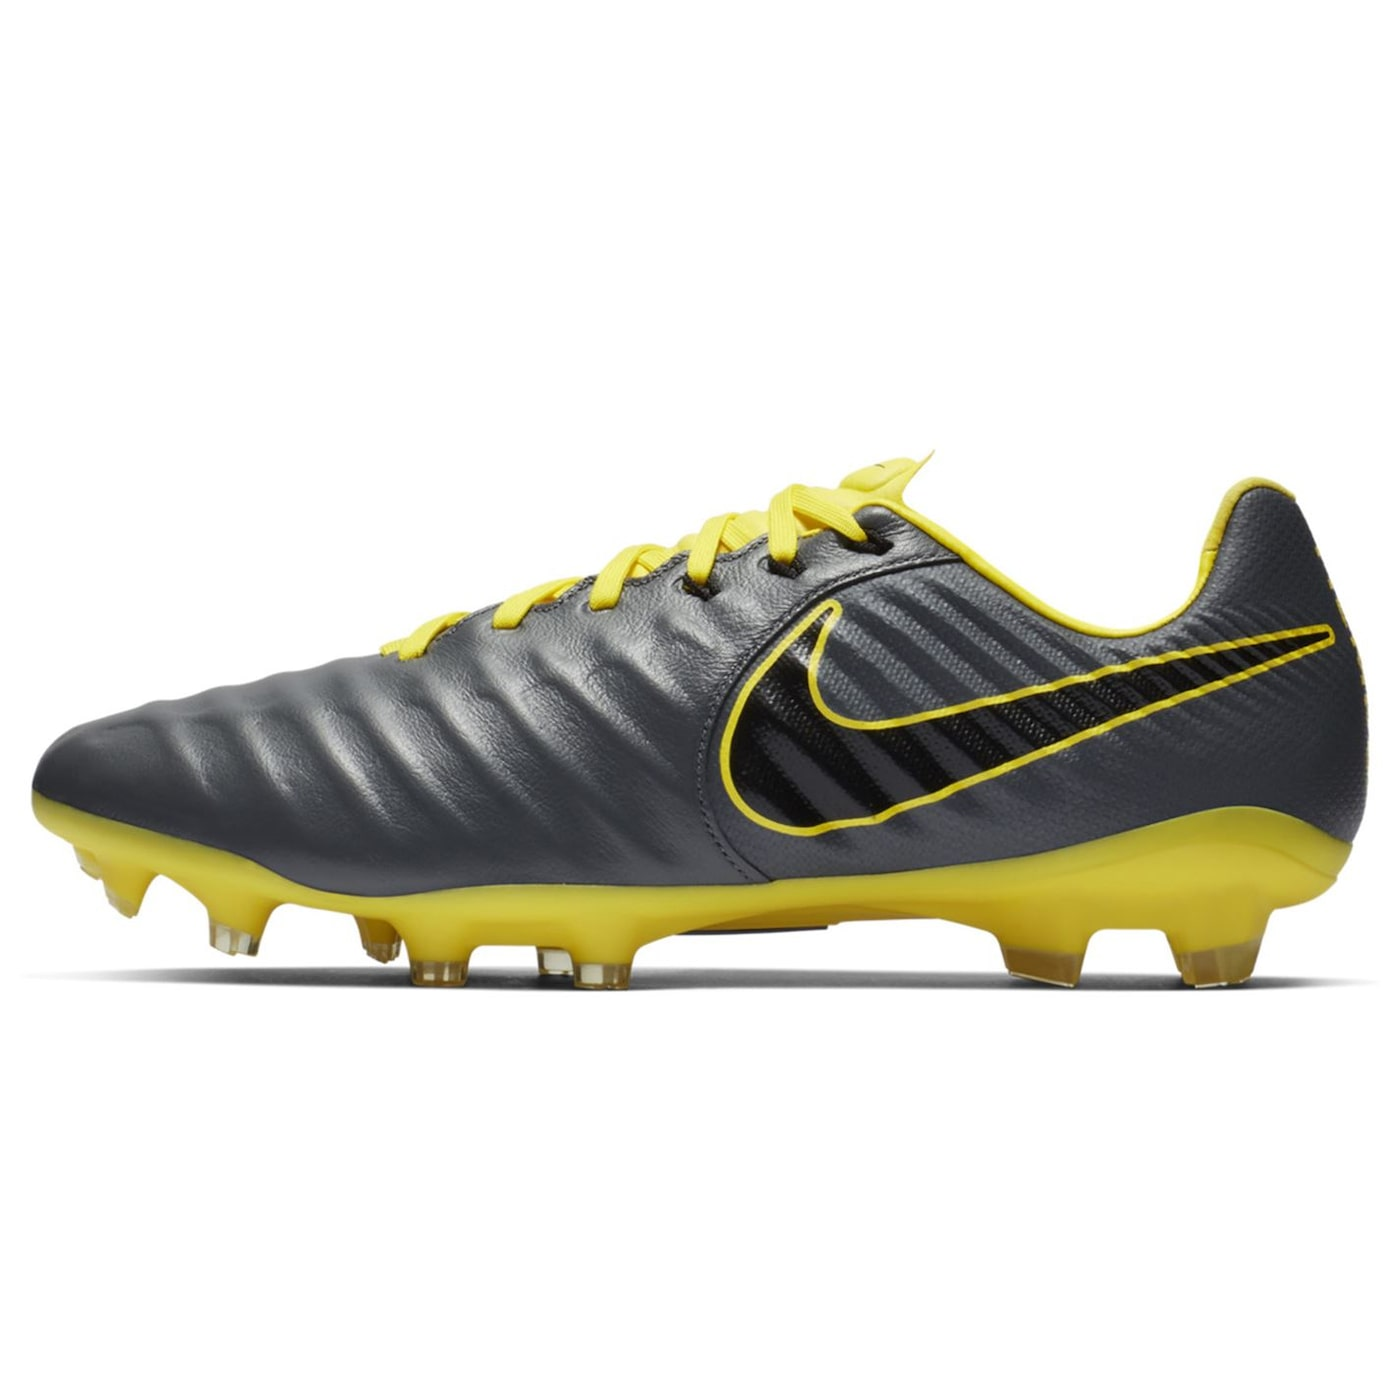 6ef2c0234ace9 Nike Tiempo Legend Pro Mens FG Football Boots